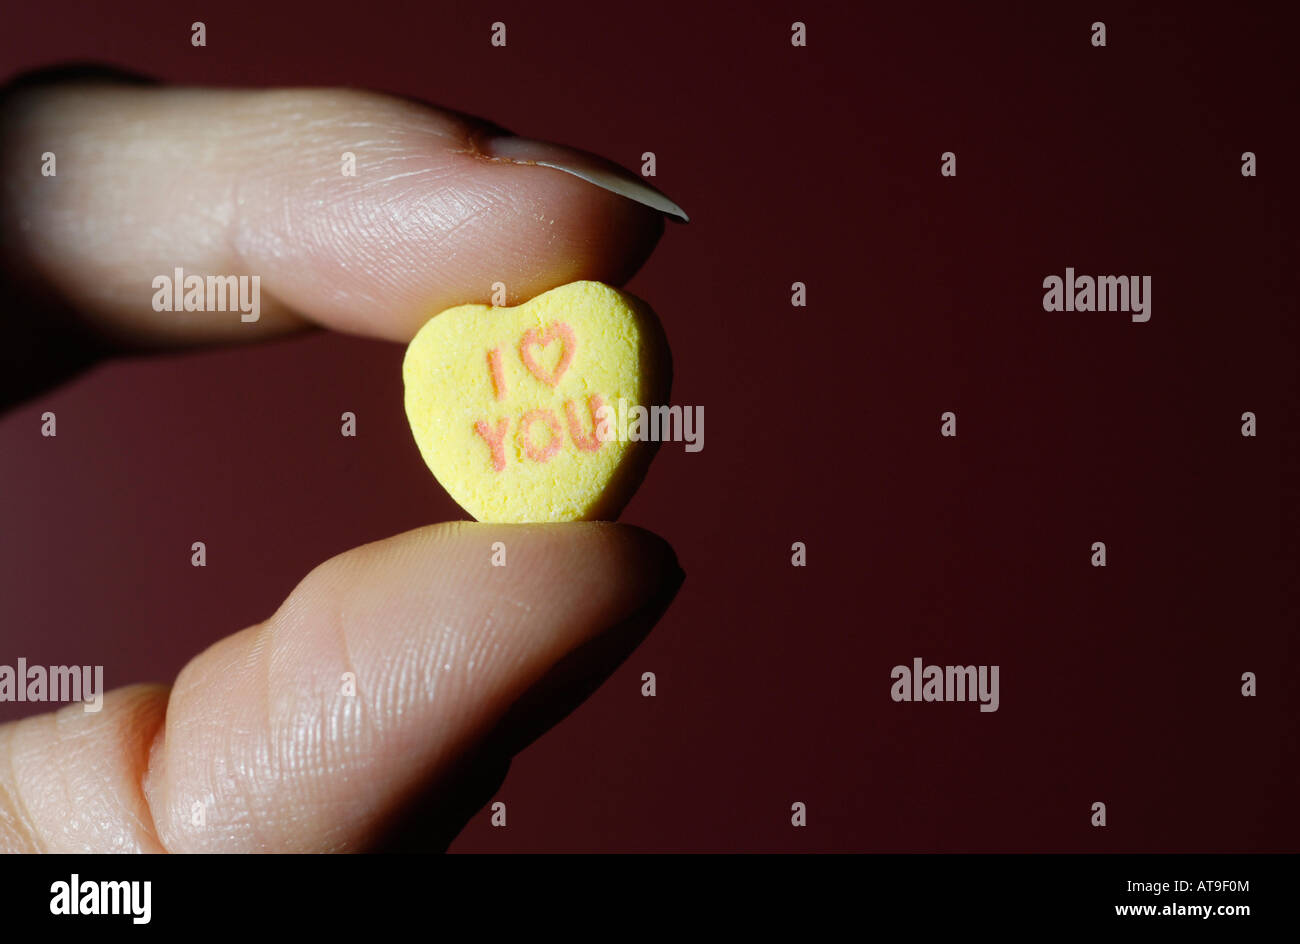 Woman Holding Candy Heart Saying I Love You Stock Photo 16246387